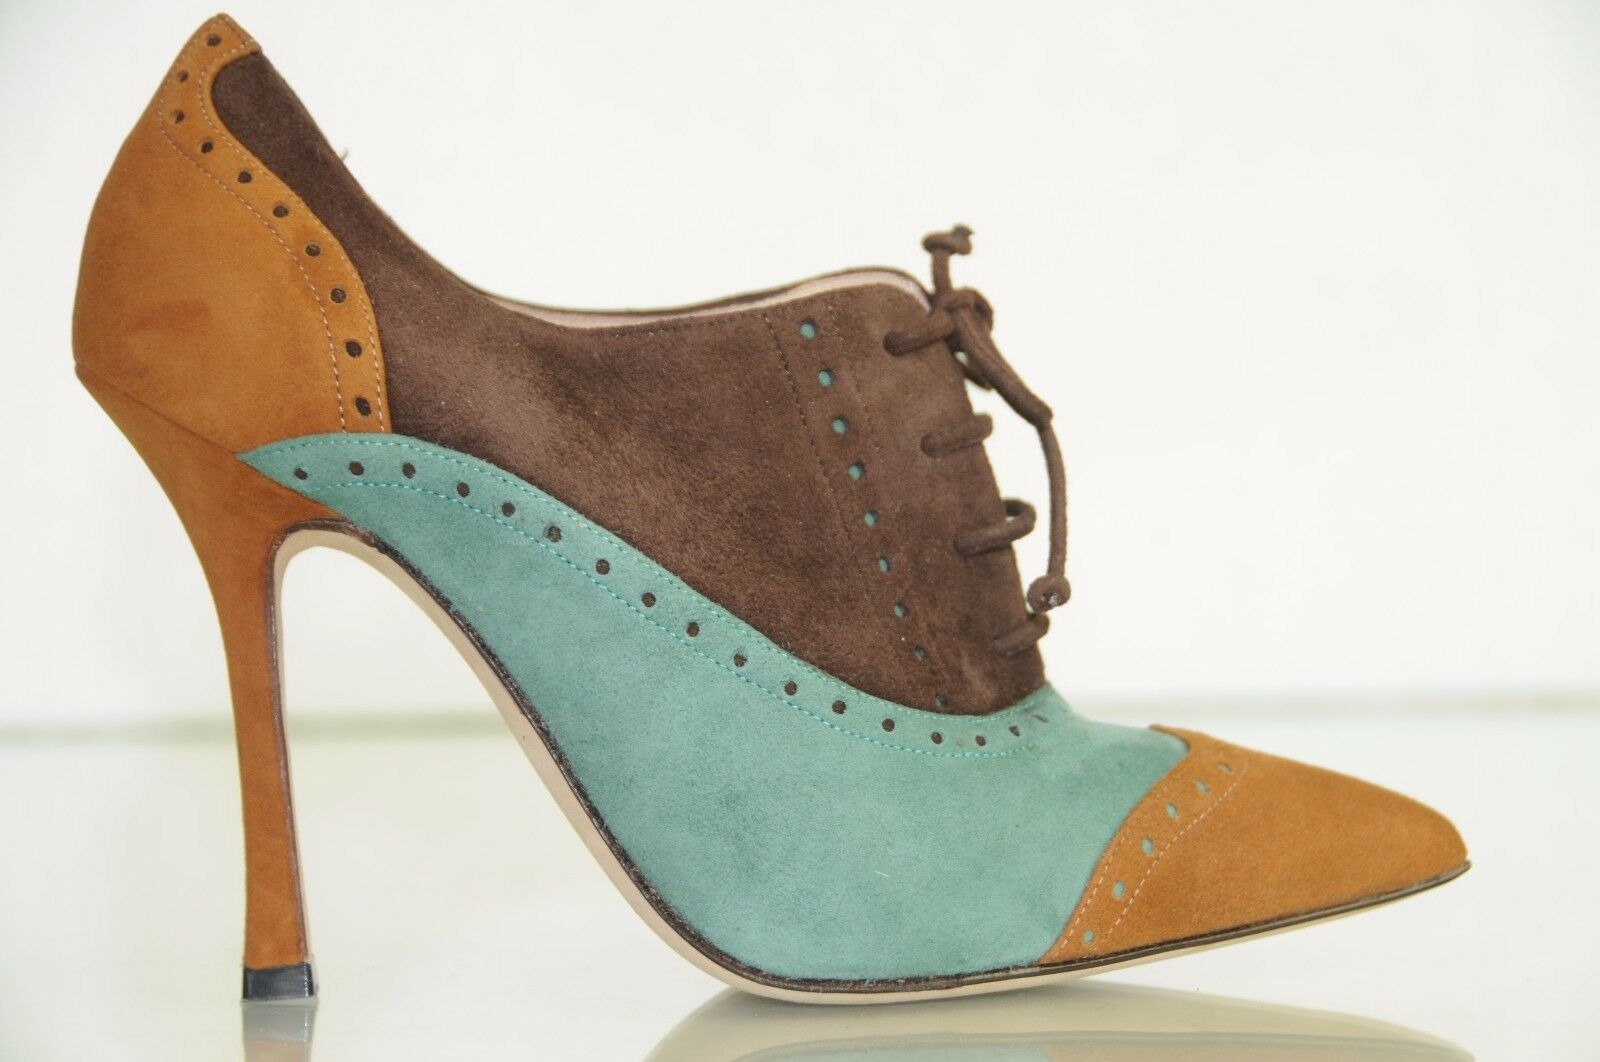 765 New Manolo Blahnik CATIAFAC Brown Green Cognac Suede Bootie shoes Boot 35.5